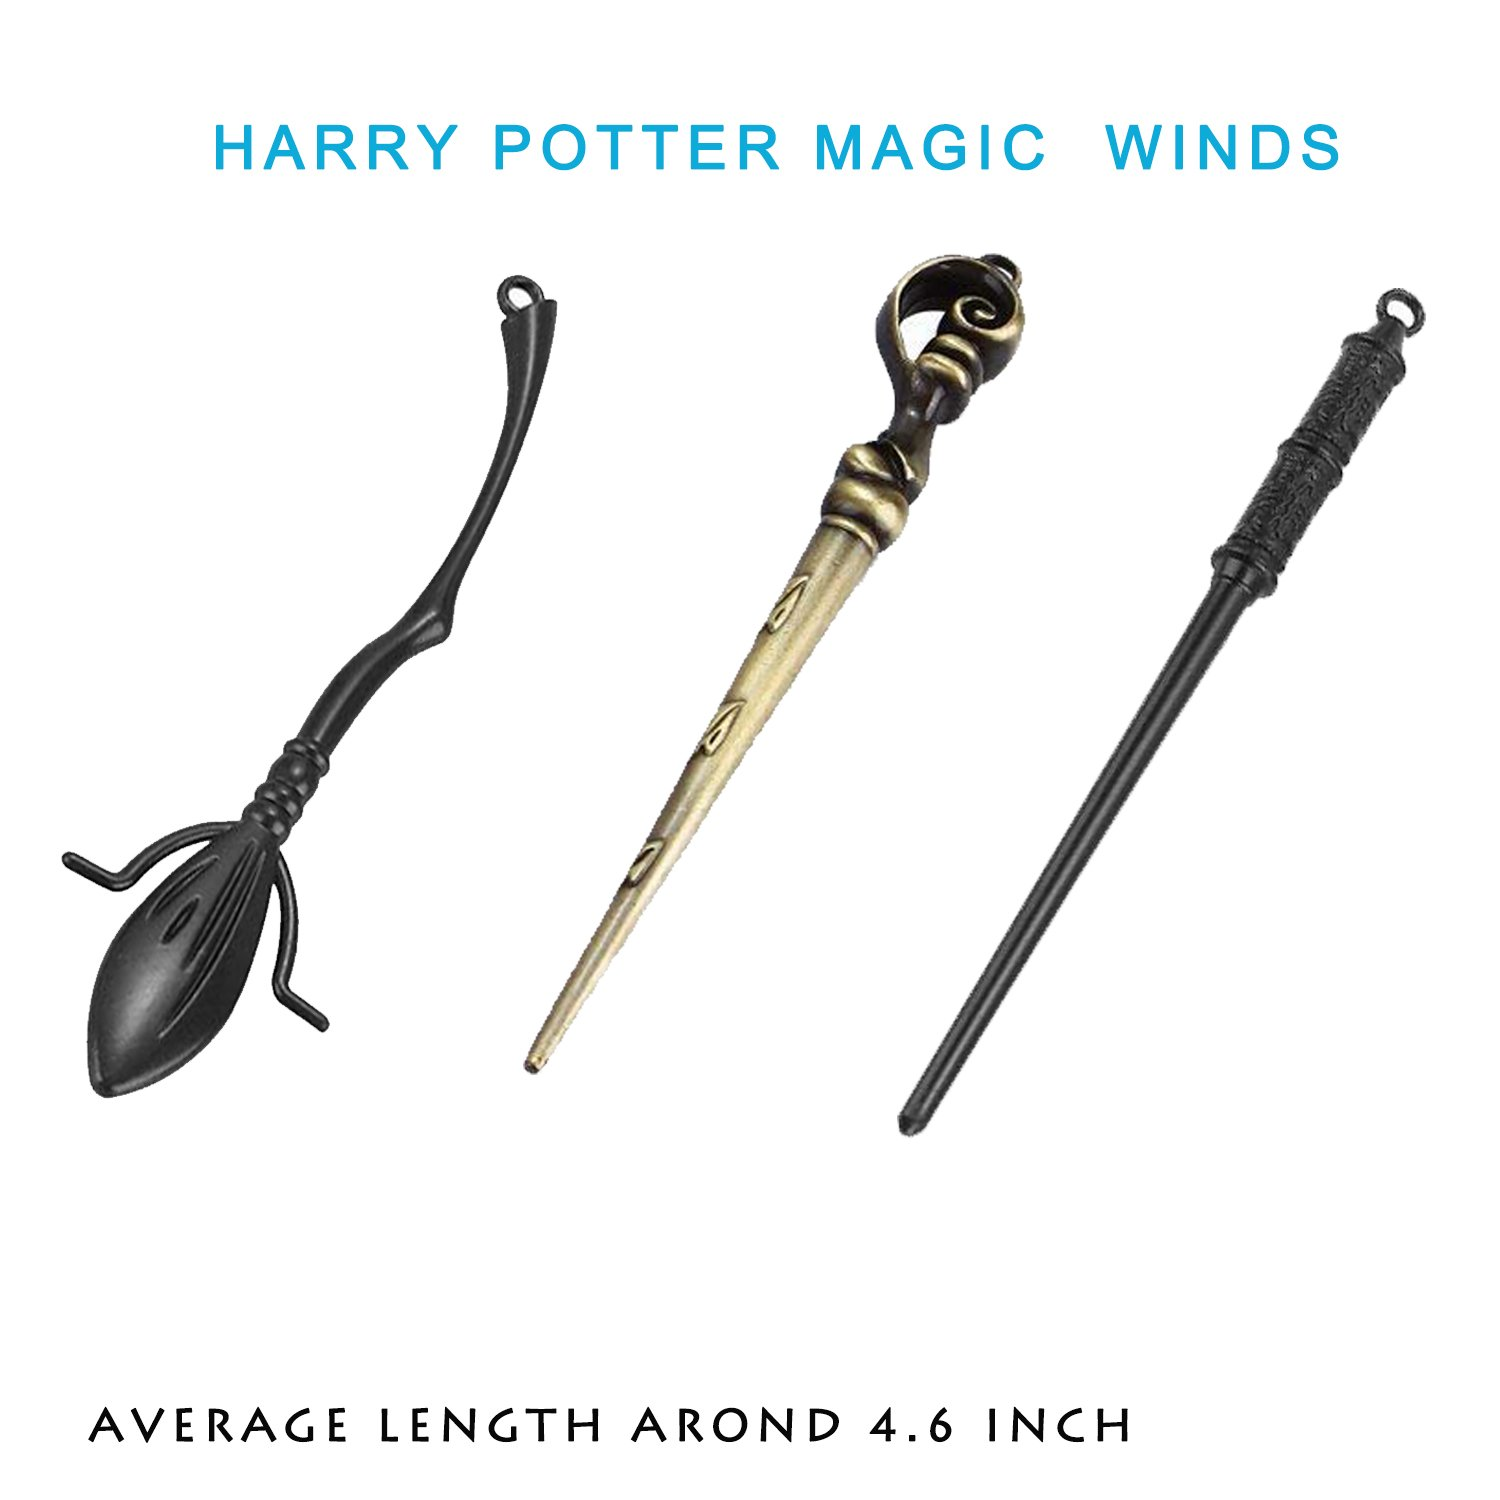 13 Styles Creative Cosplay Harry Potter Series Magic Wands New with Metal Core Magical Wands with Keychain Necklace for Kids by Harmoos (Image #3)